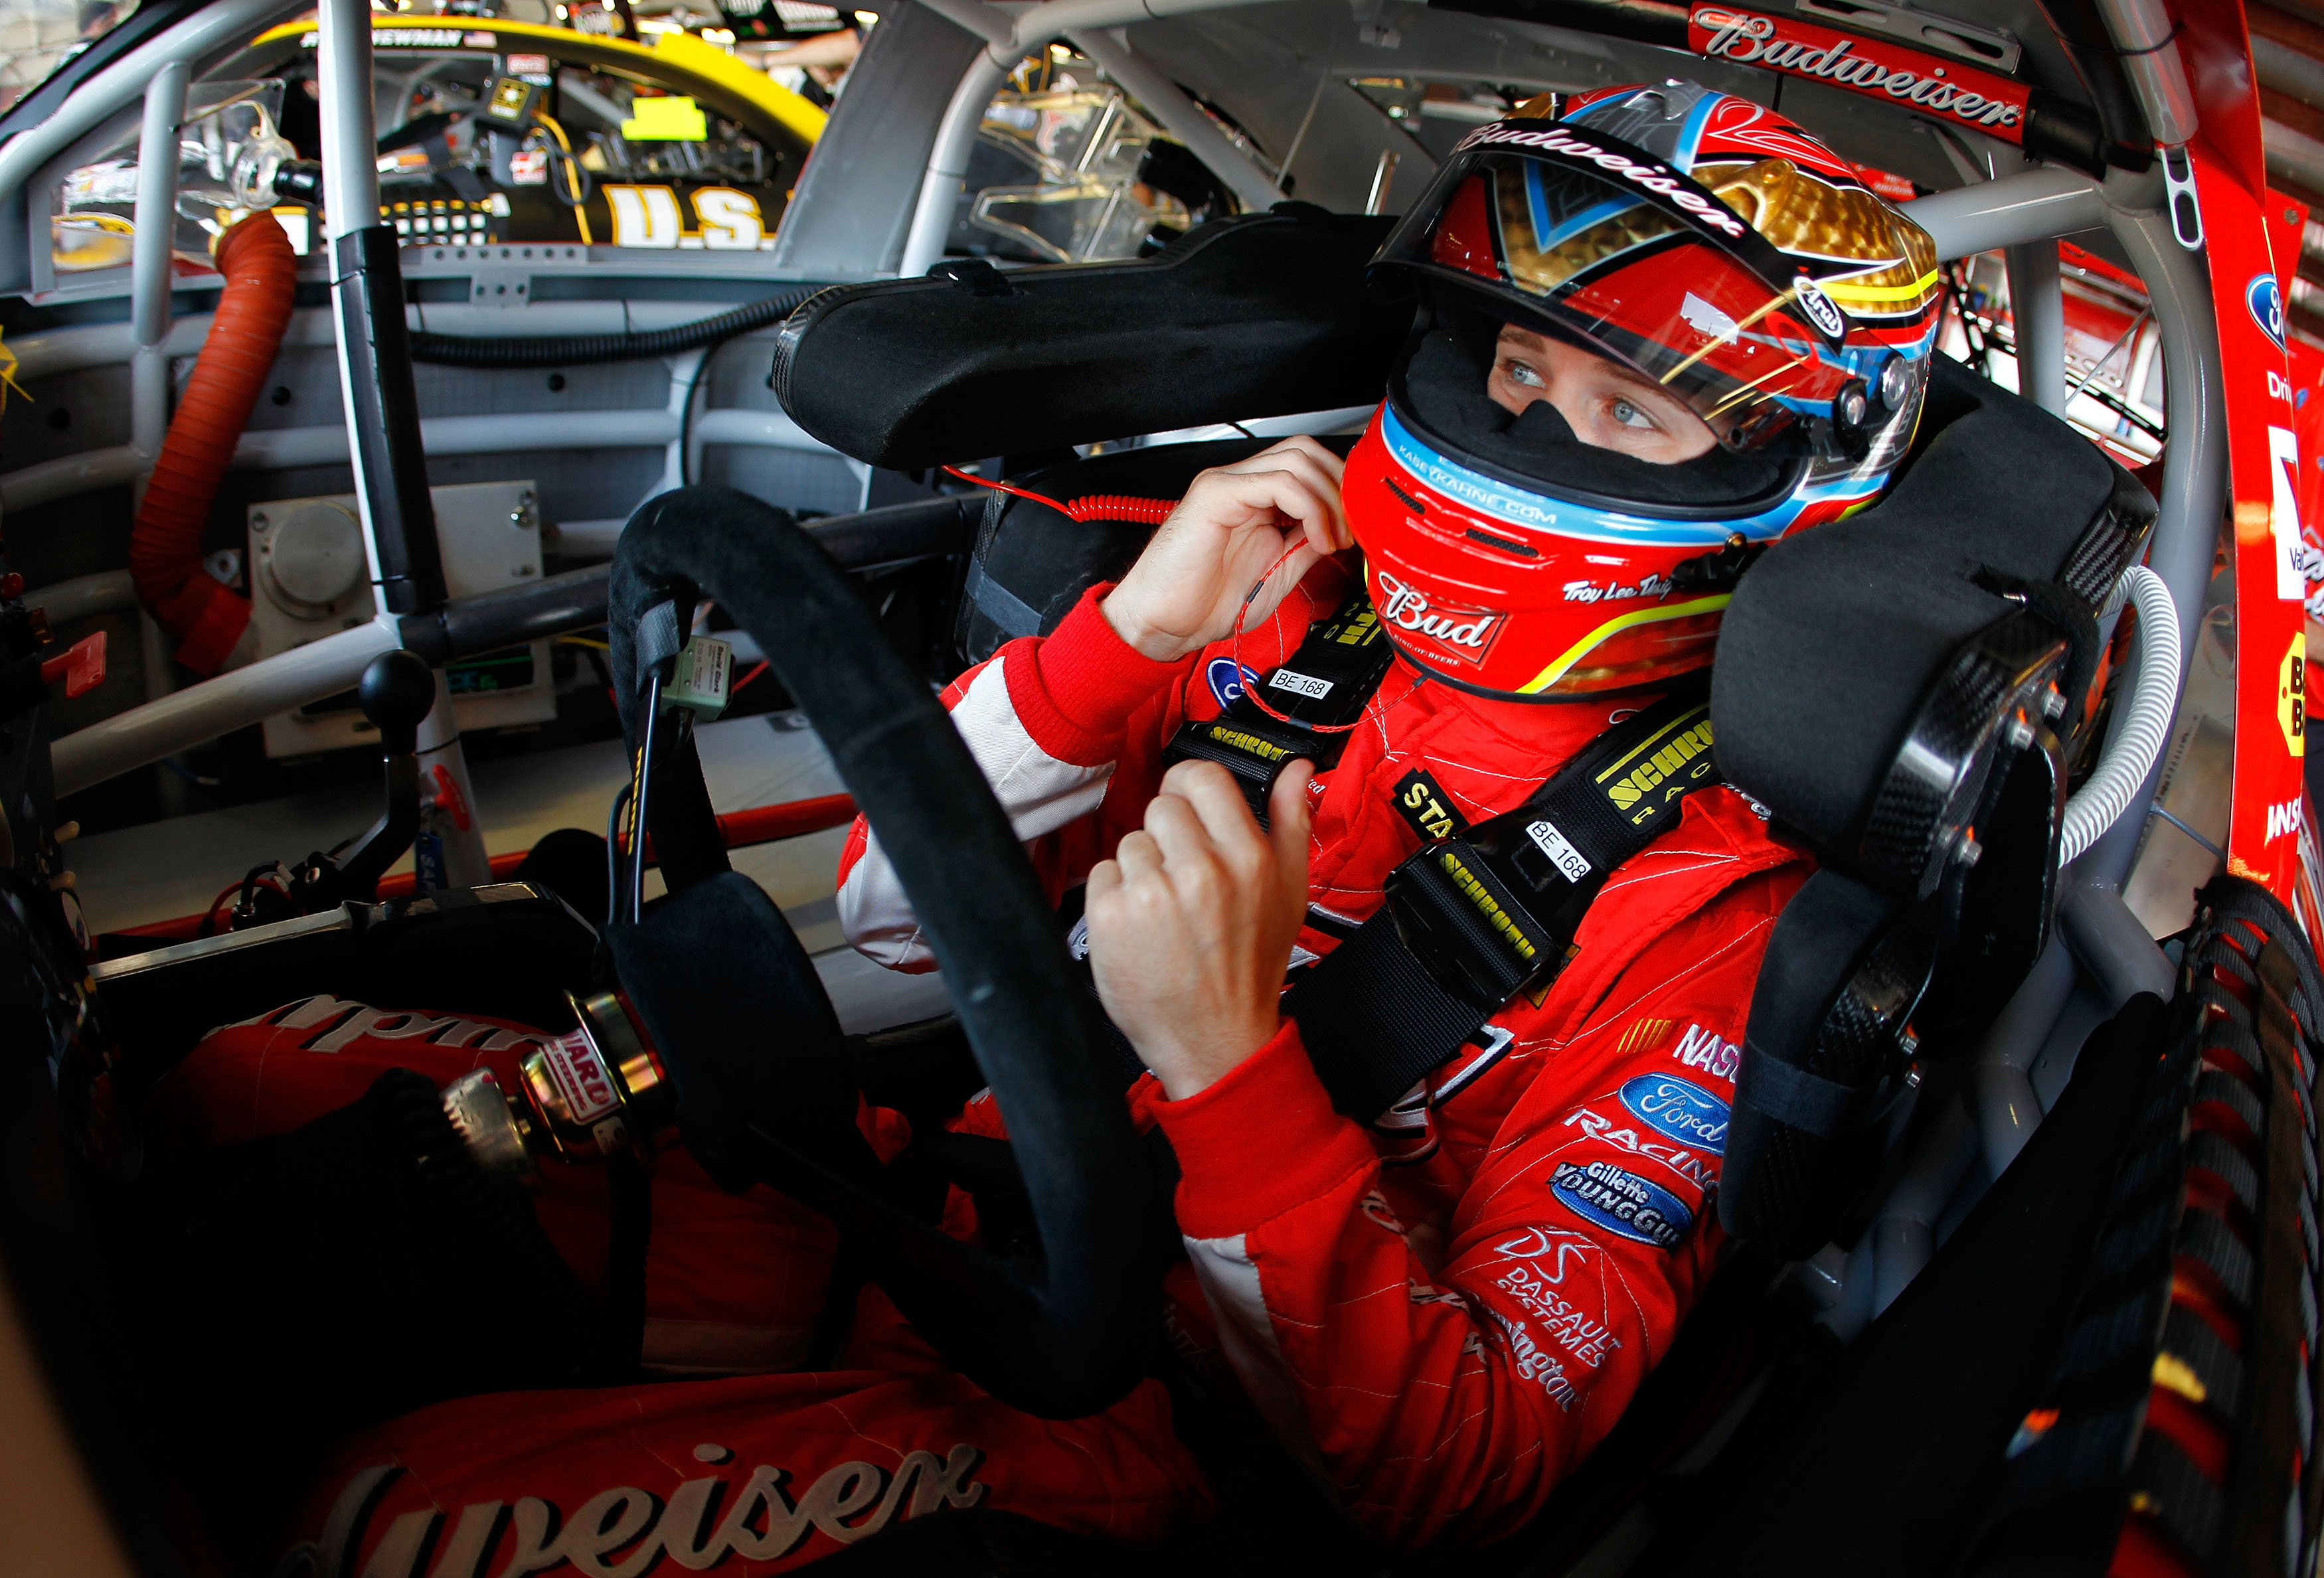 WATKINS GLEN, NY - AUGUST 06:  Kasey Kahne, driver of the #9 Budweiser Ford, sits in his car during practice for the NASCAR Heluva Good! Sour Cream Dips at The Glen on August 6, 2010 in Watkins Glen, New York.  (Photo by Todd Warshaw/Getty Images for NASC